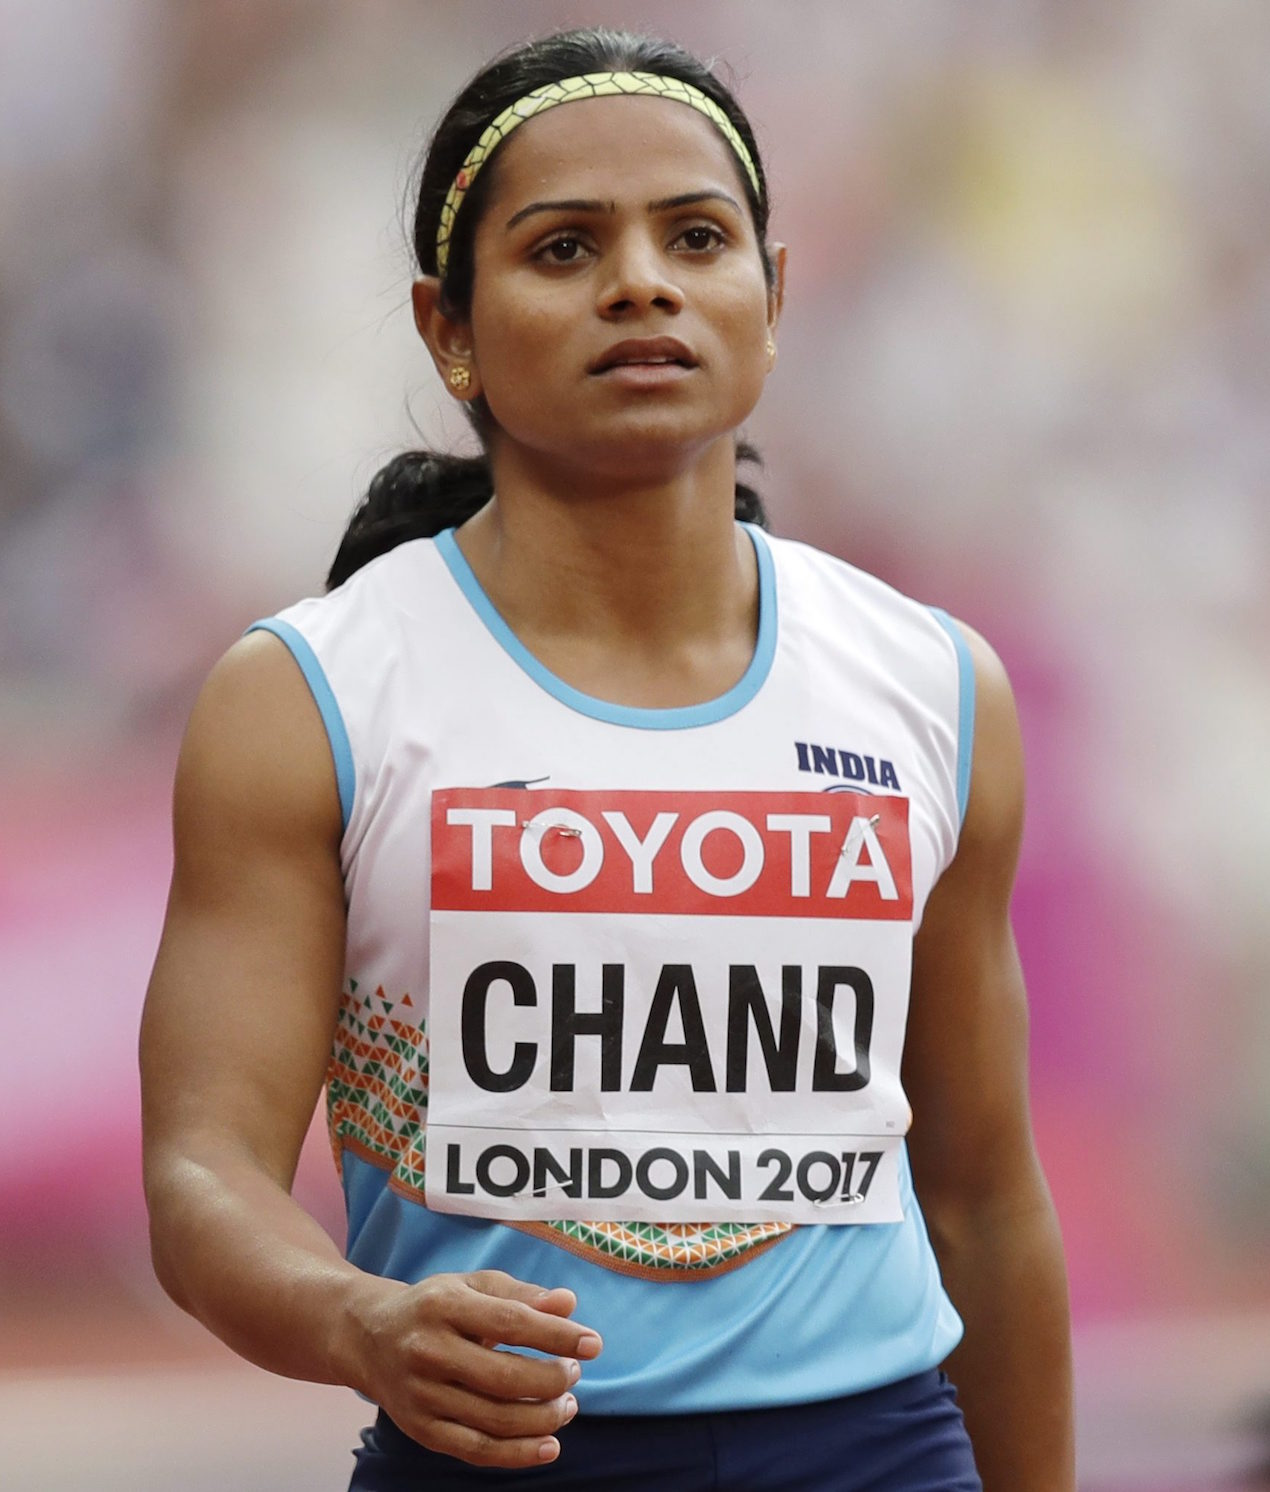 India's Dutee Chand checks her time after a women's 100m heat during the World Athletics Championships in London Saturday, Aug. 5, 2017. (AP Photo/Tim Ireland)